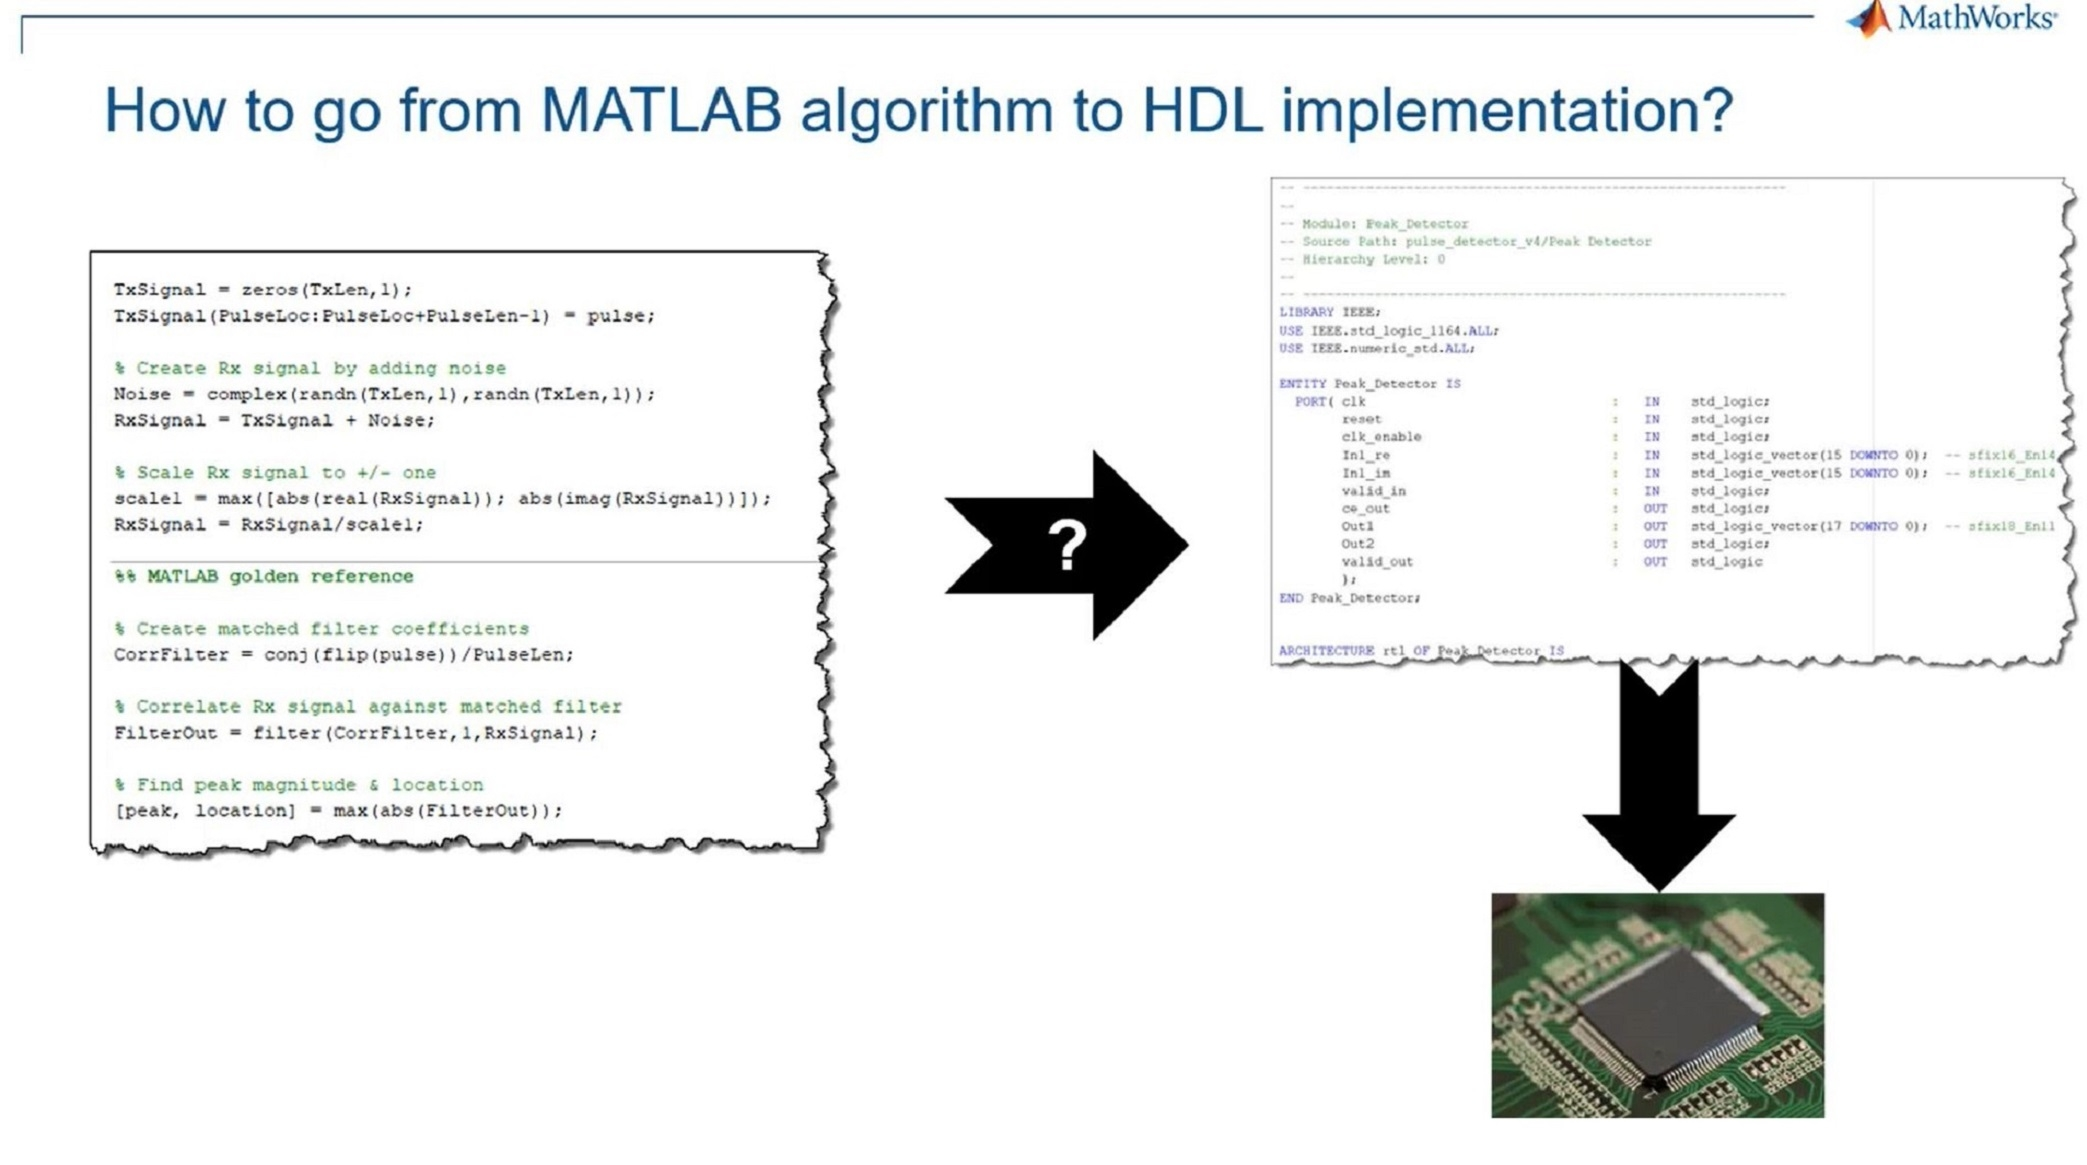 See how to use the strengths of MATLAB and Simulink to design a signal-processing algorithm for deploying to FPGA hardware.